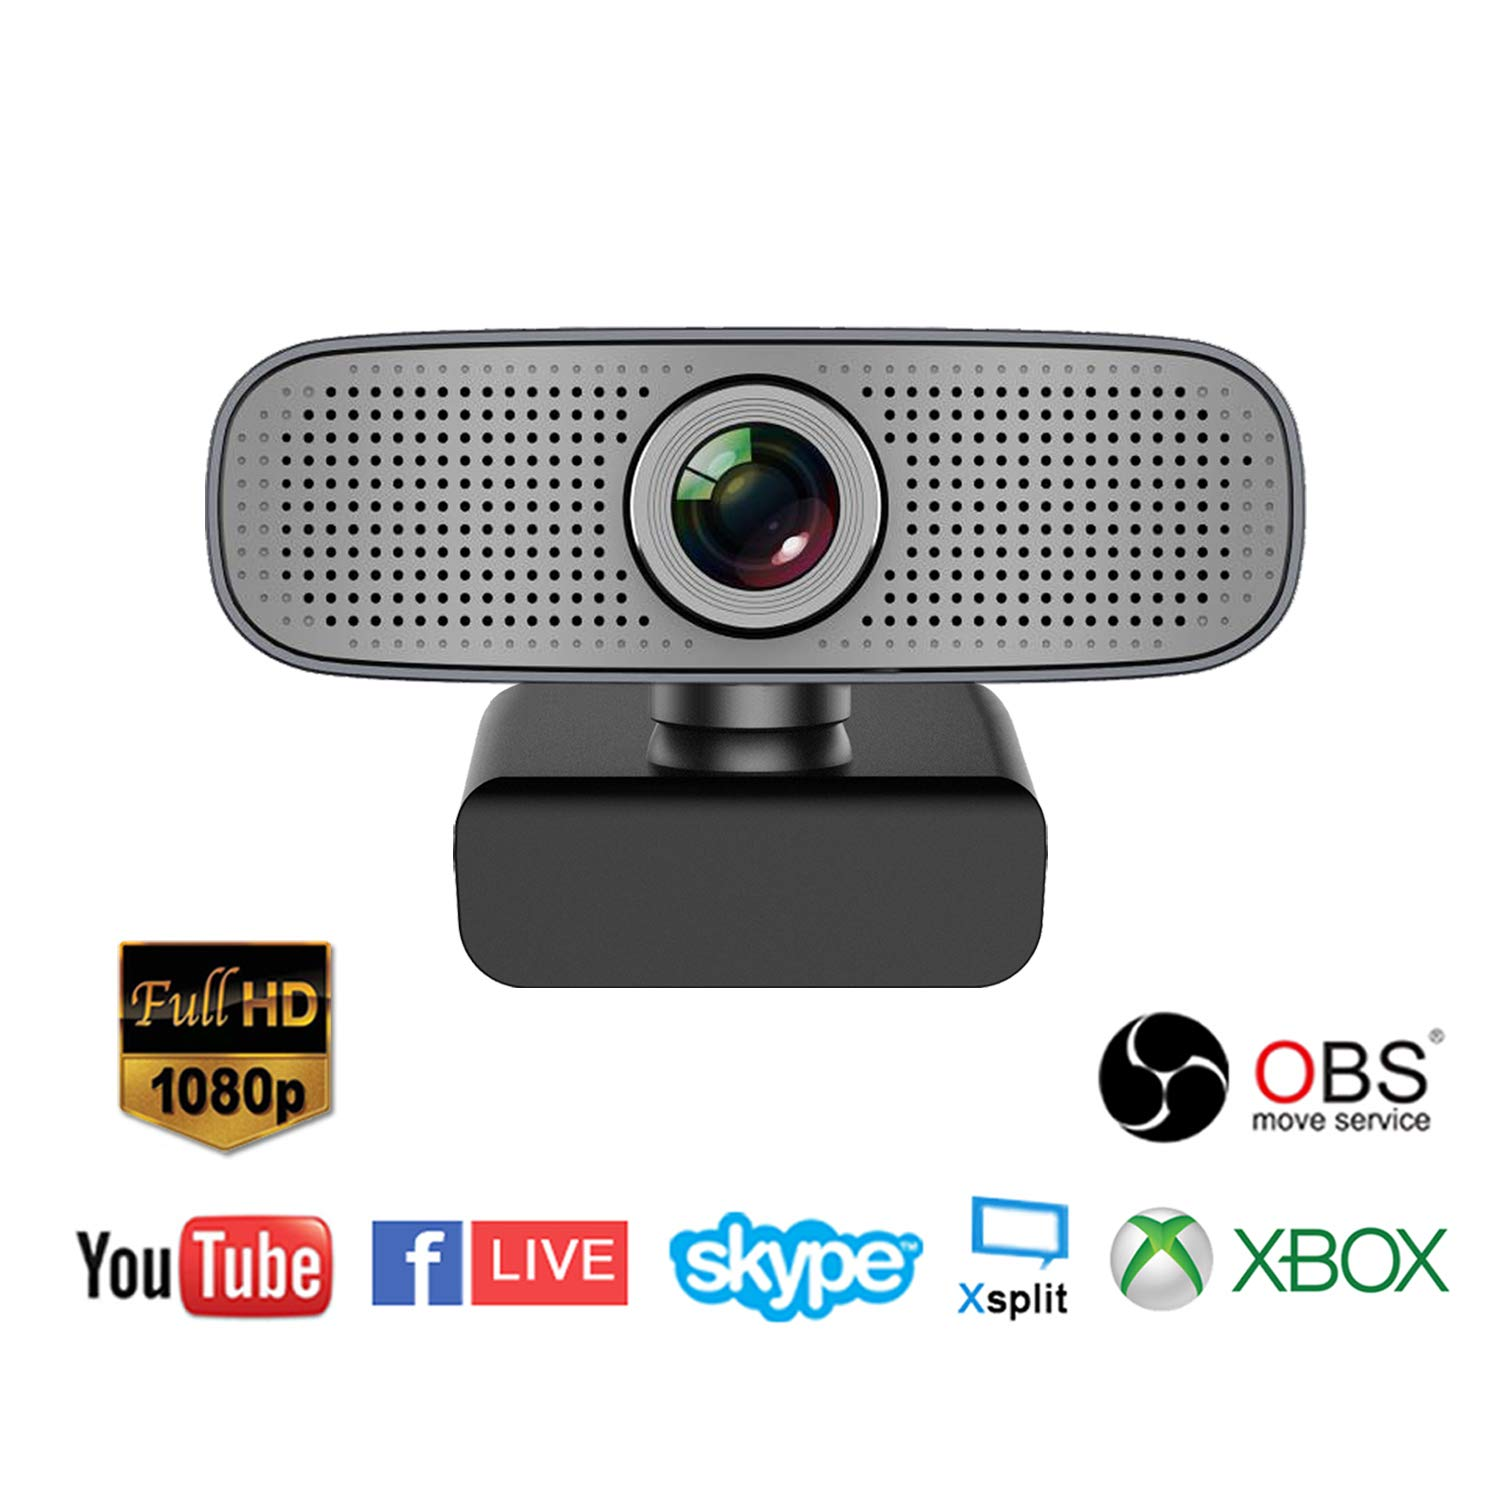 Spedal Full HD Webcam 1080p, Beauty Live Streaming Webcam, Computer Laptop Camera for OBS Xbox XSplit Skype Facebook, Compatible for Mac OS Windows 10/8/7 by Spedal